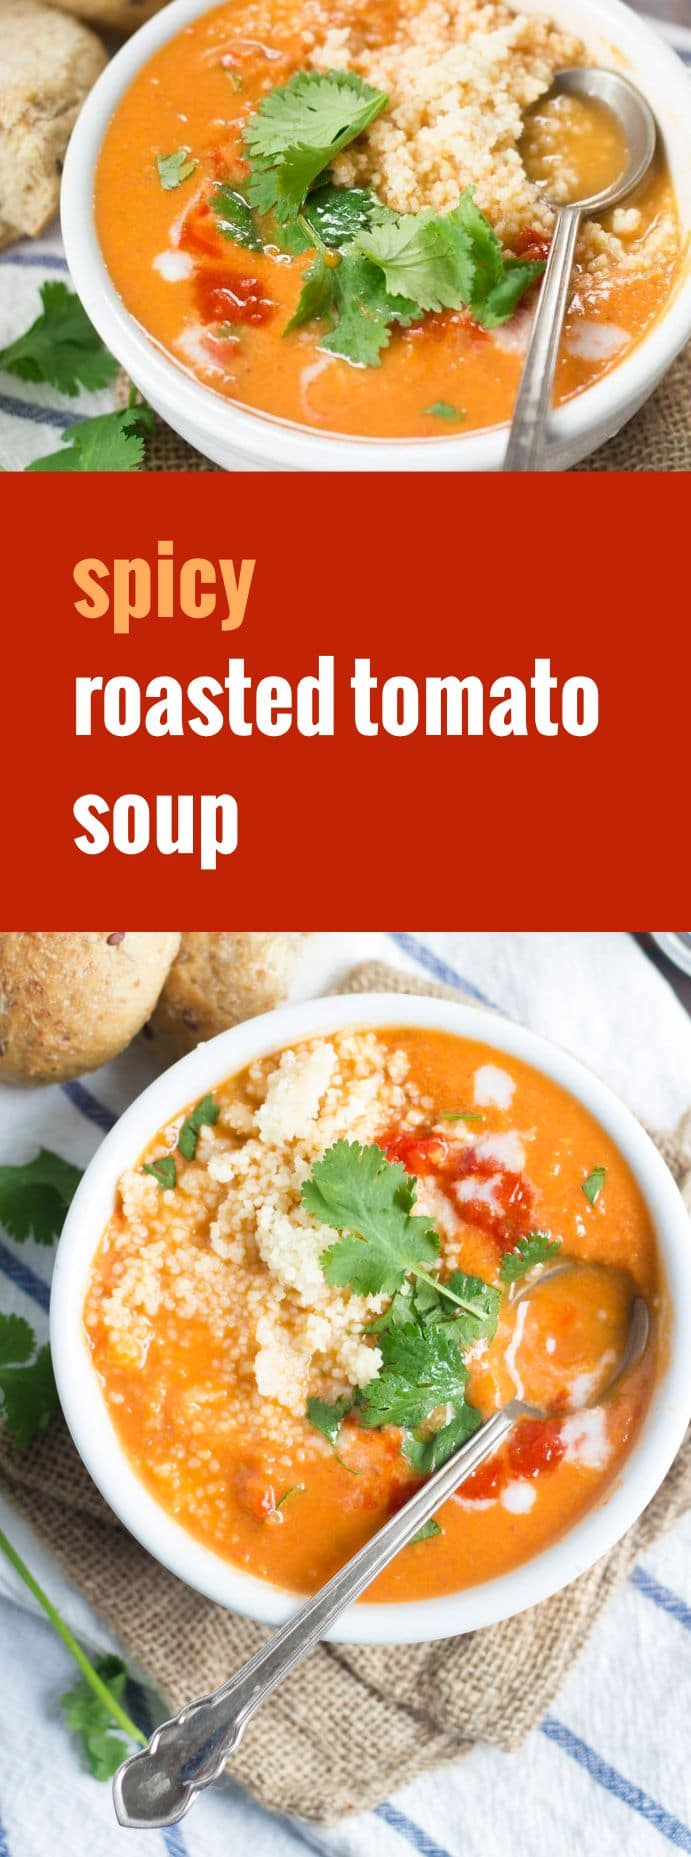 Spicy Roasted Tomato Soup with Couscous